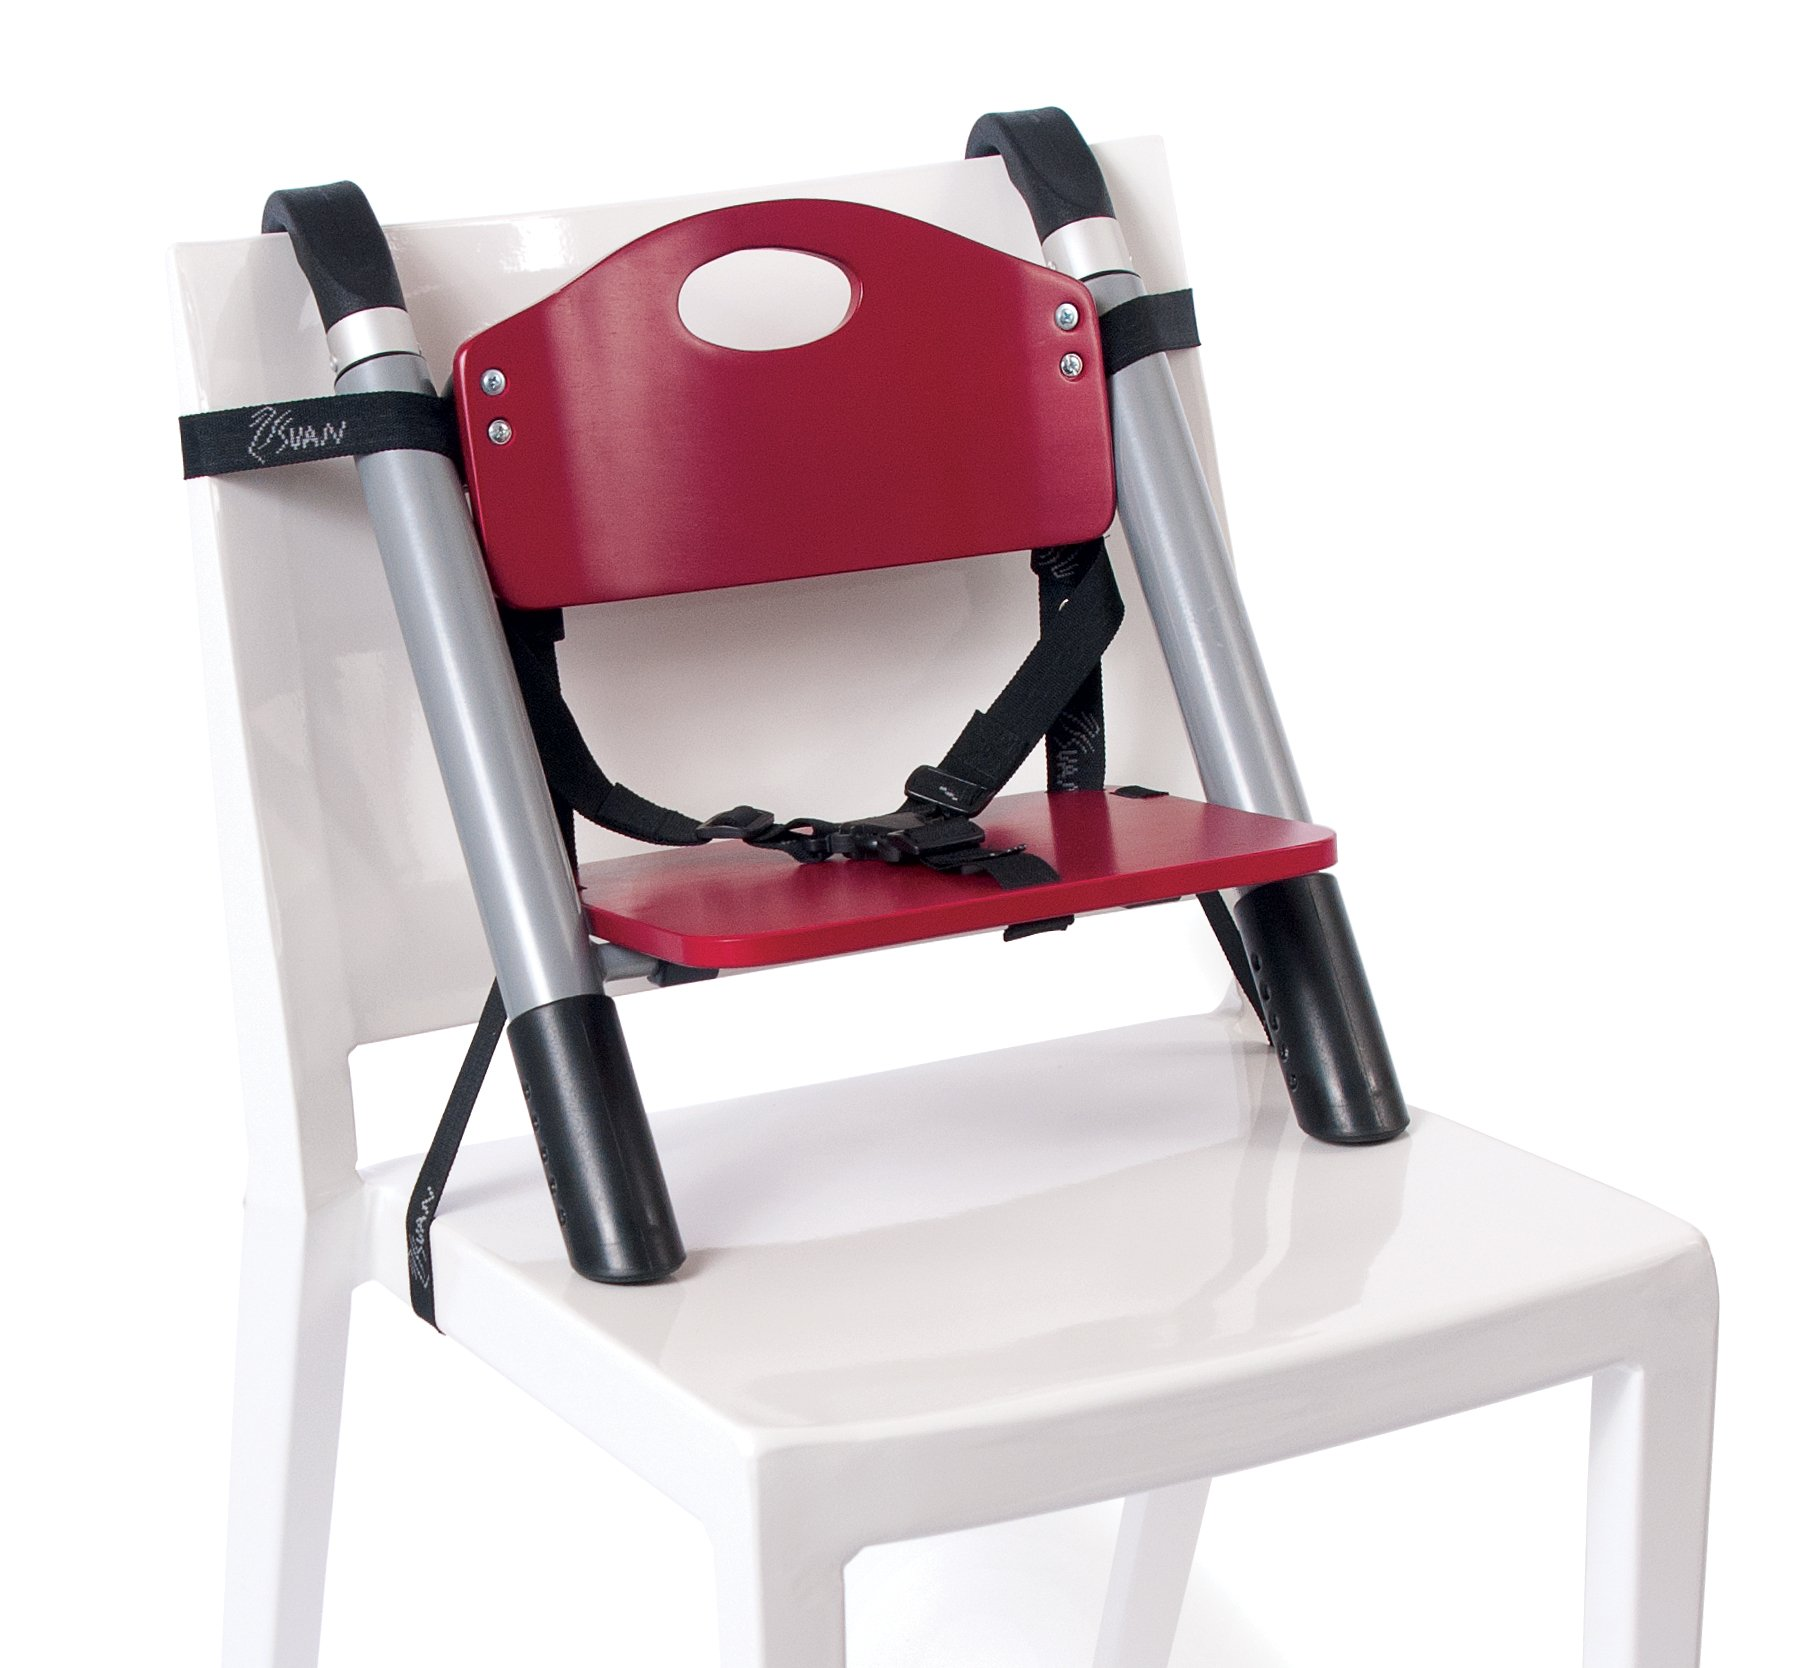 booster seat svan lyft high chair booster seat adjusts easily to most chairs. Black Bedroom Furniture Sets. Home Design Ideas